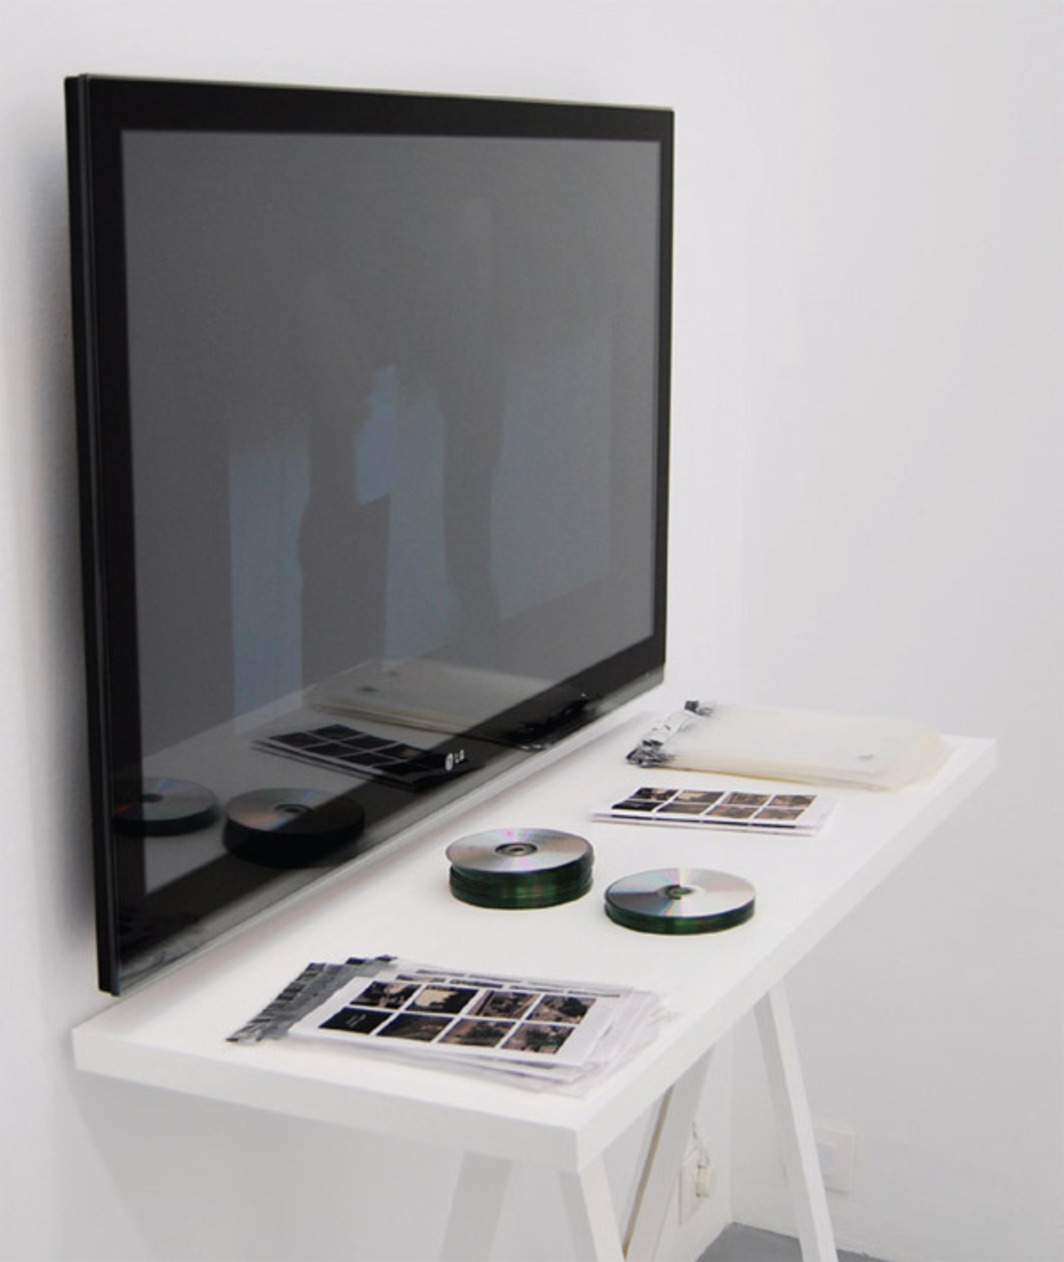 Pedro G. Romero, Archivo F.X.—L'Argent (Archive F.X.—Money), 2010, DVD, monitor, blank DVDs, plastic envelopes, covers. Installation view.